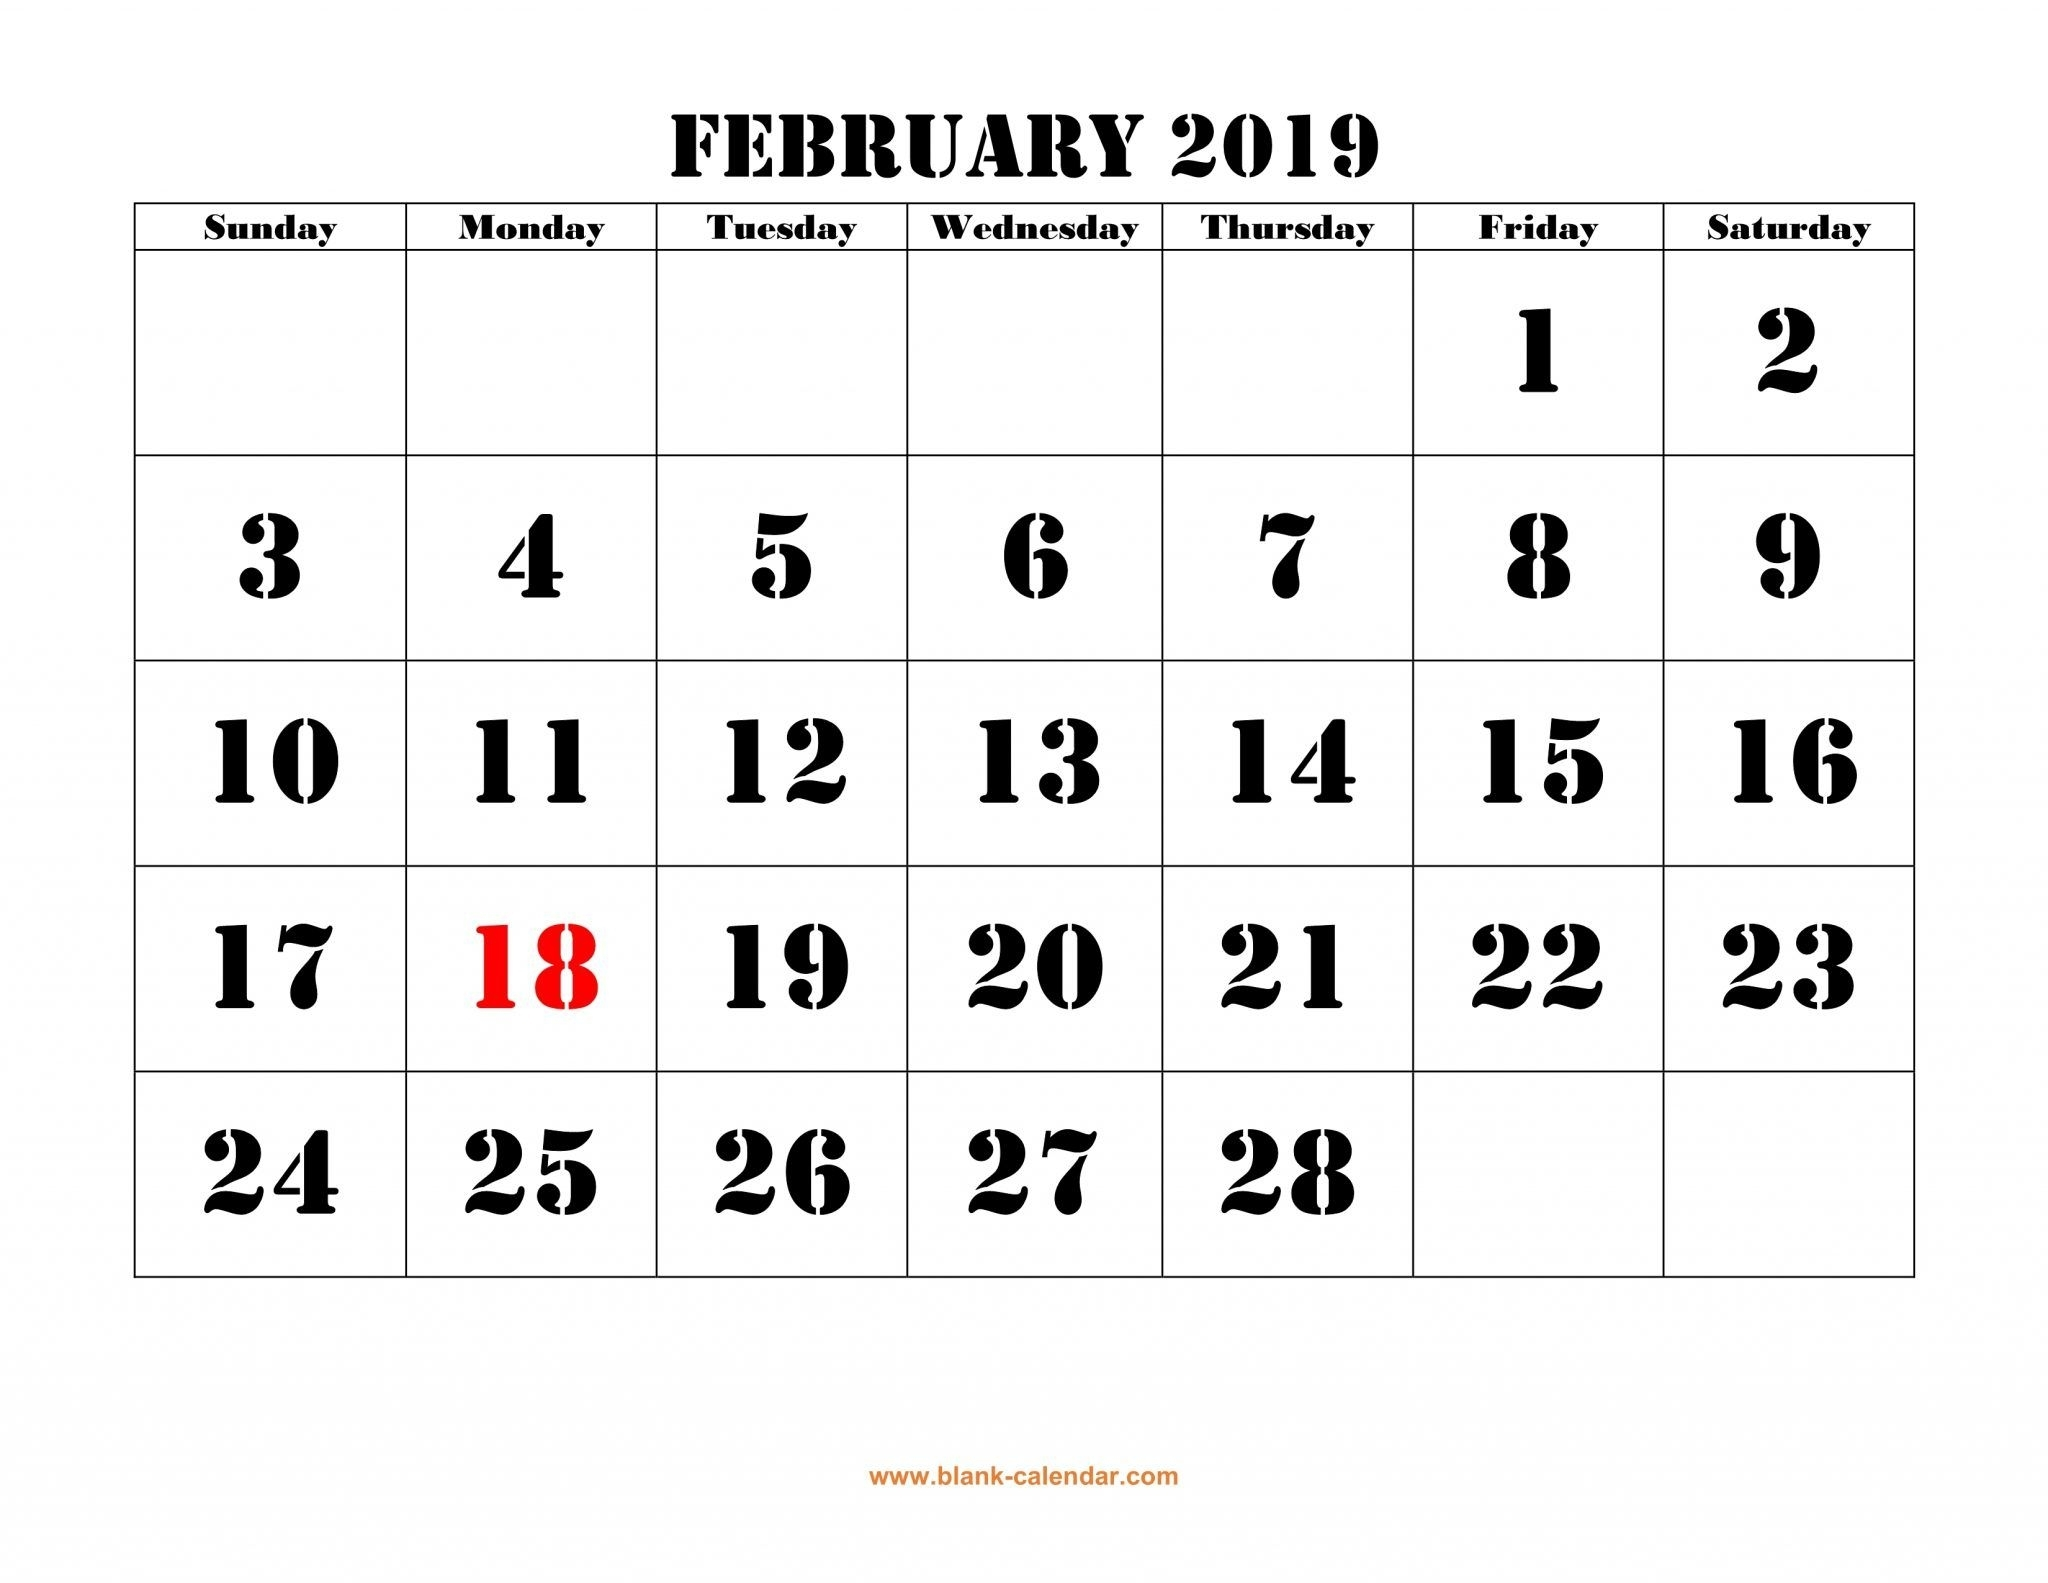 2020 February Calendar Printable By Week And Dates | Blank